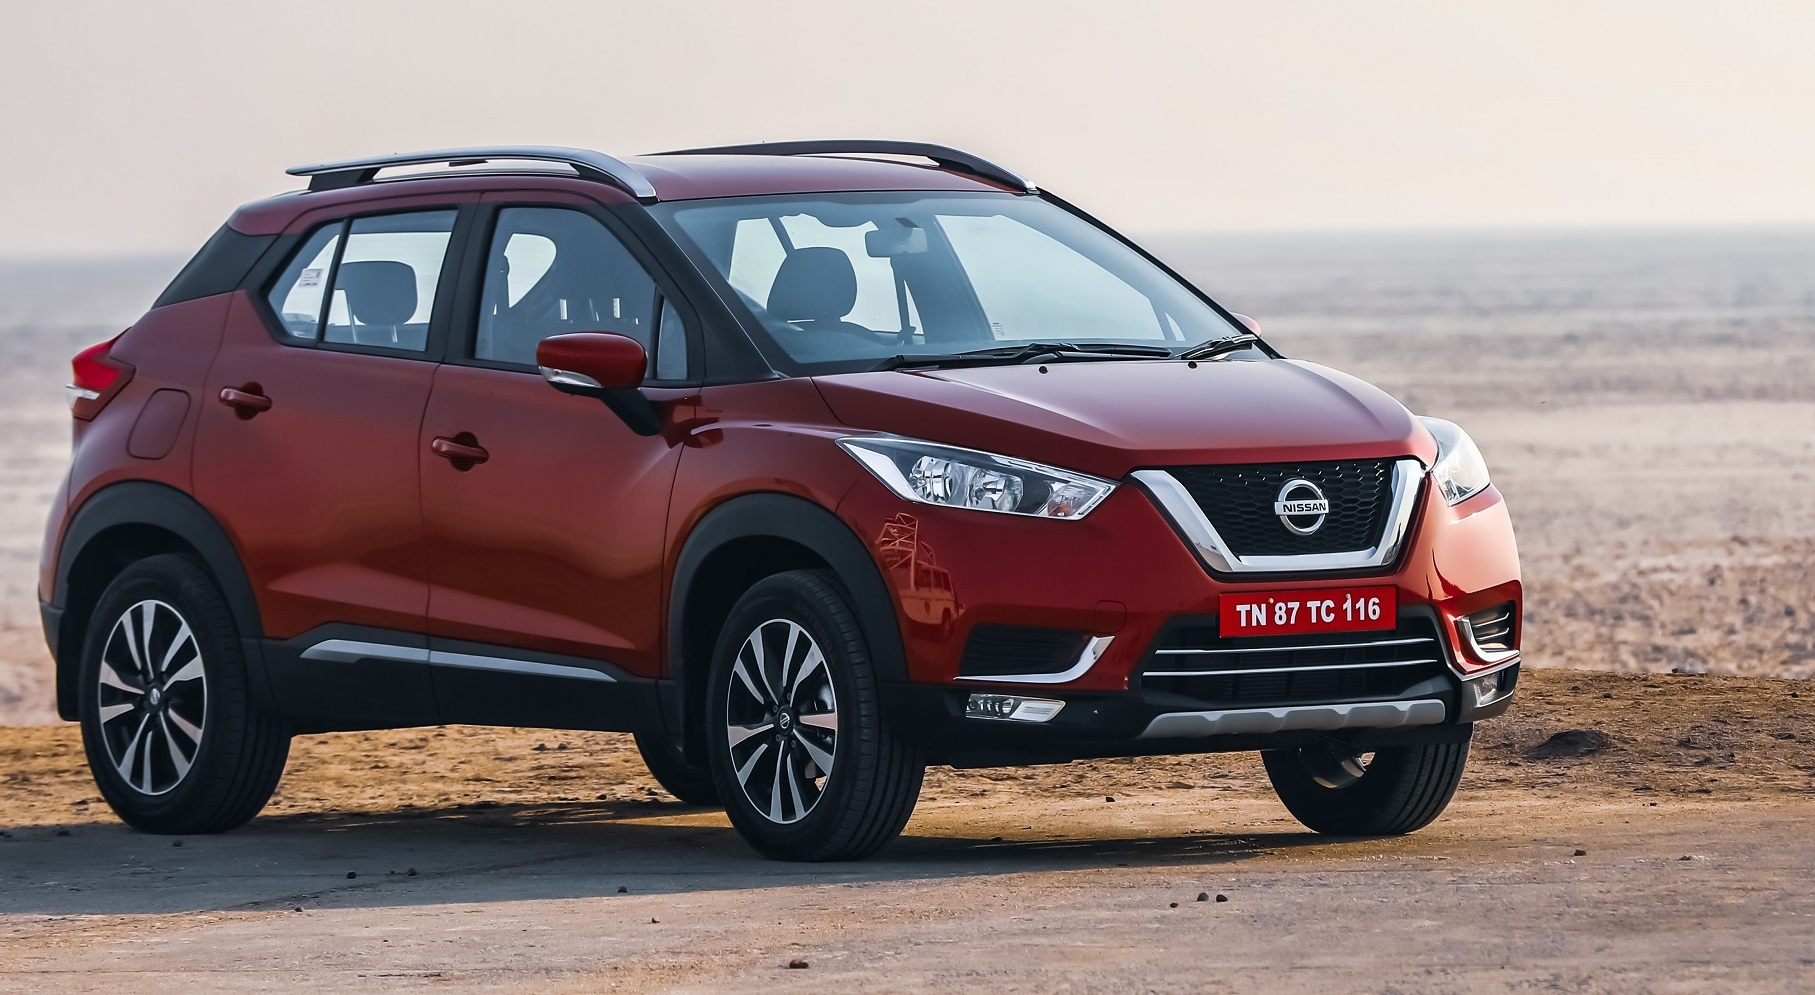 Bookings for Nissan's new SUV 'KICKS' starts